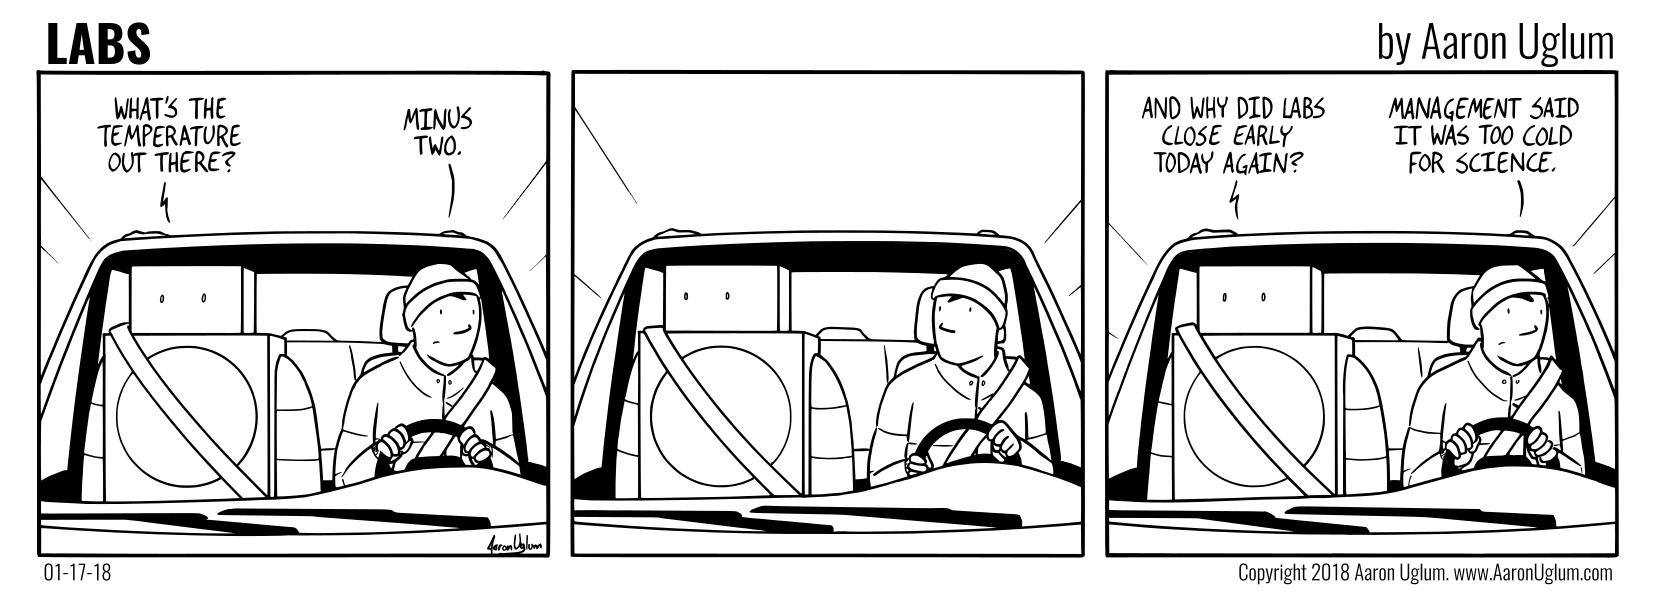 LABS Cartoon 01/17/18 - Driving Home